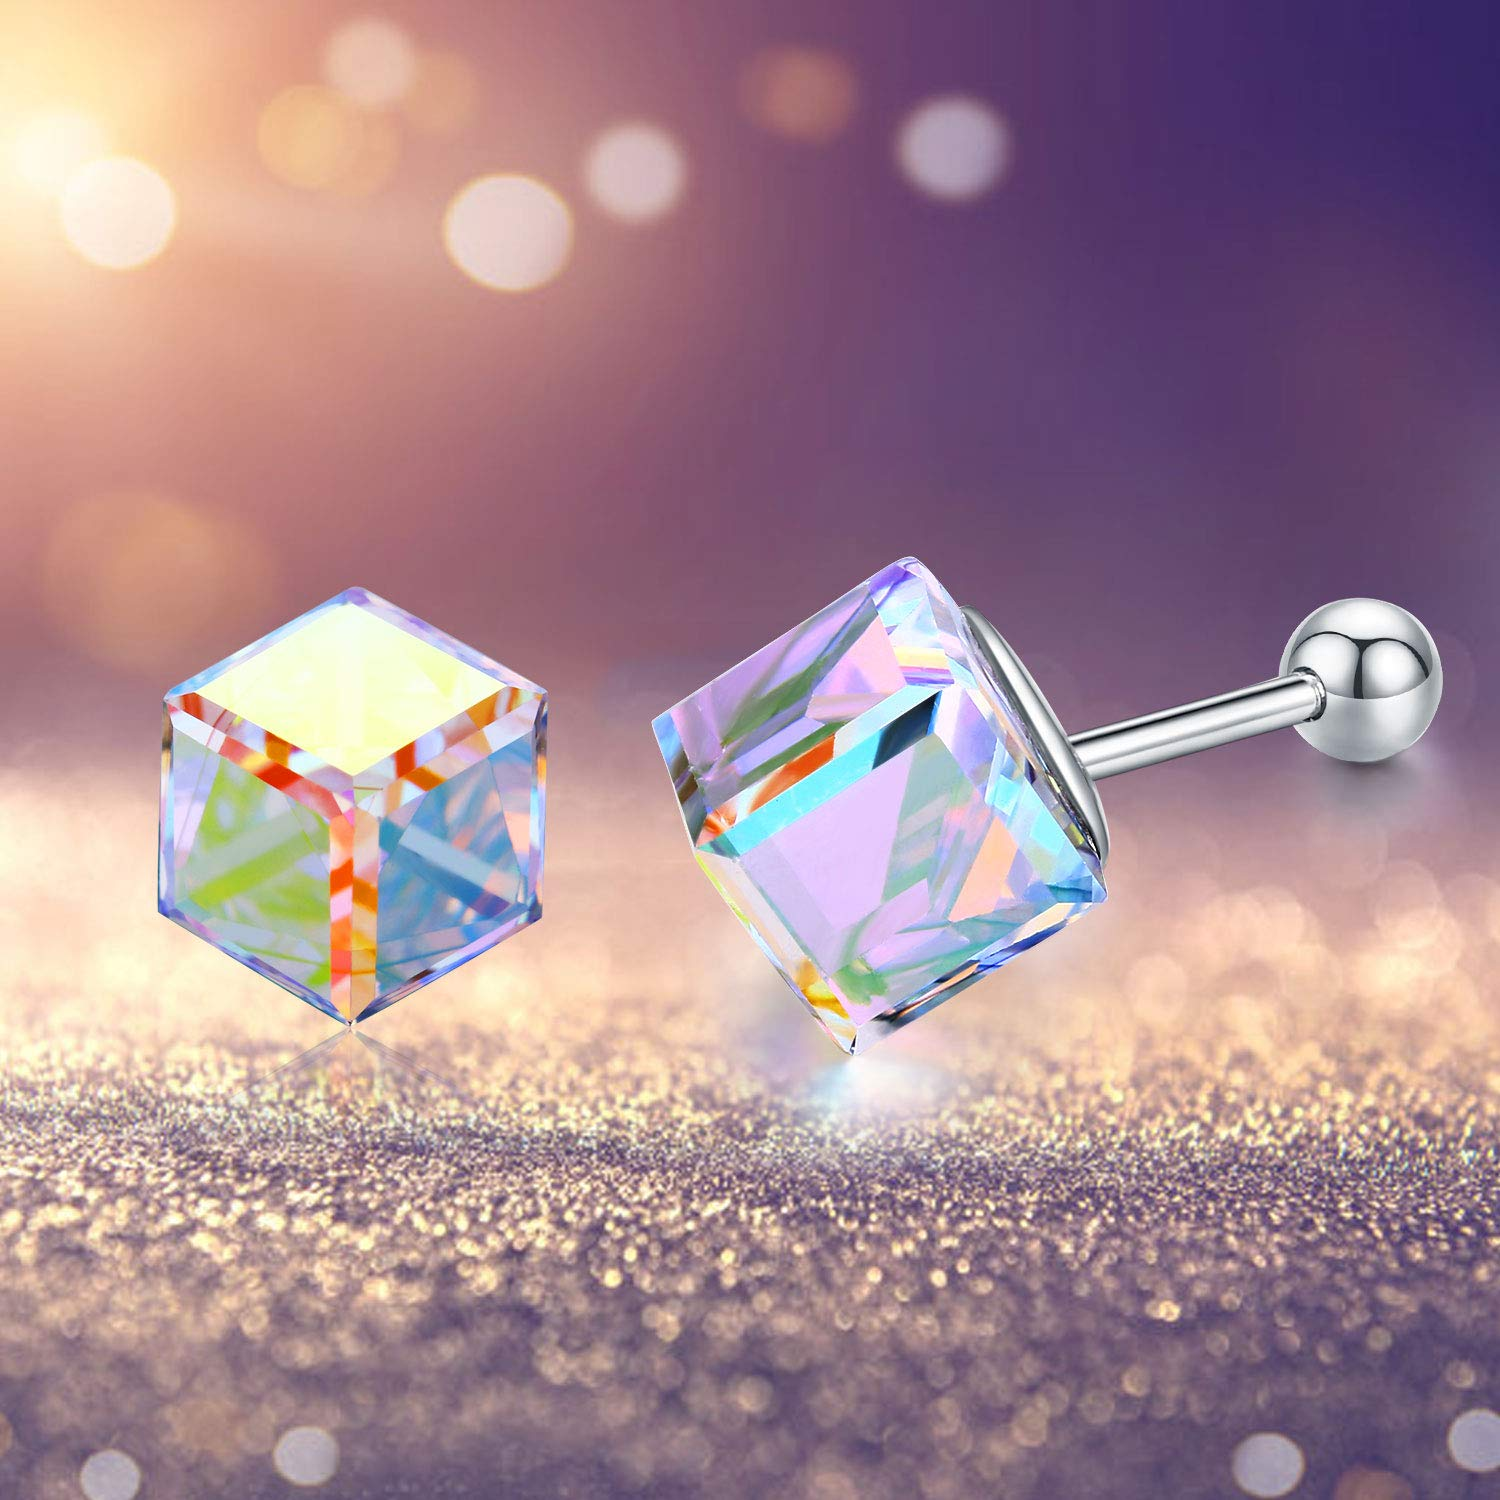 925 Sterling Silver Crystal Stud Earrings for Women,Crystals Cube Hypoallergenic Earrings for Her.